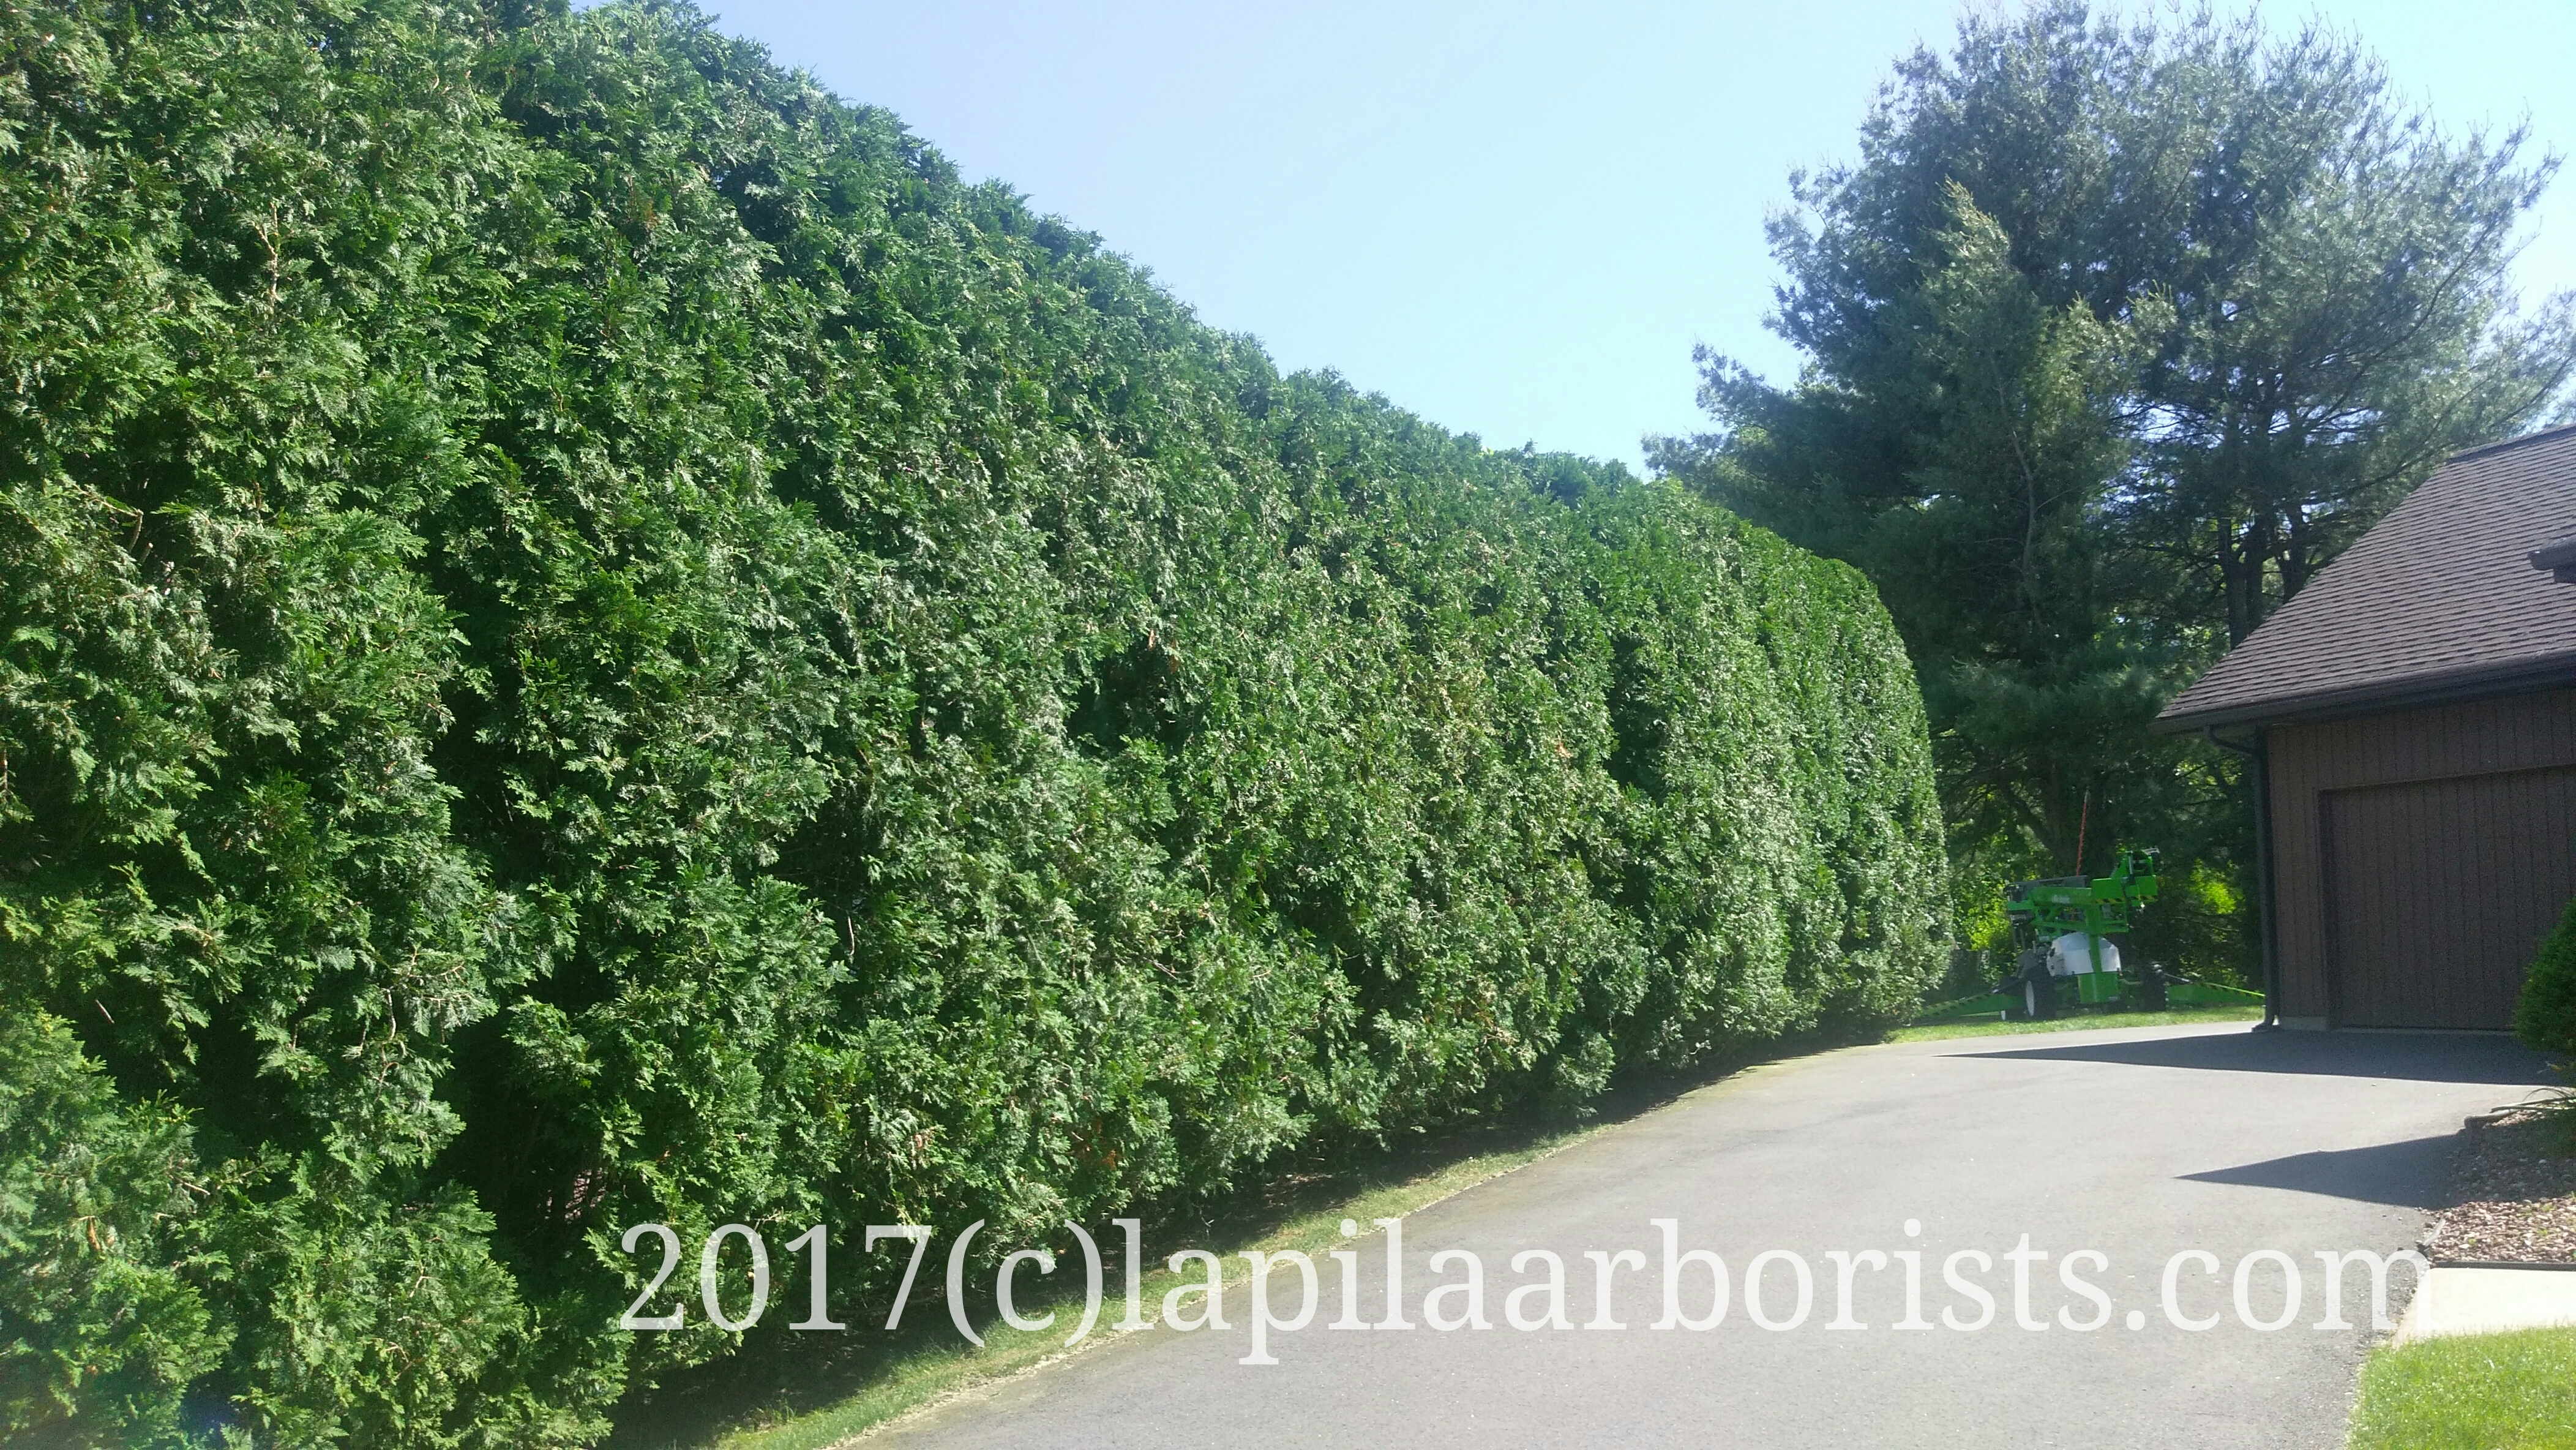 Pruning An Arborvitae Hedge To Awesomeness